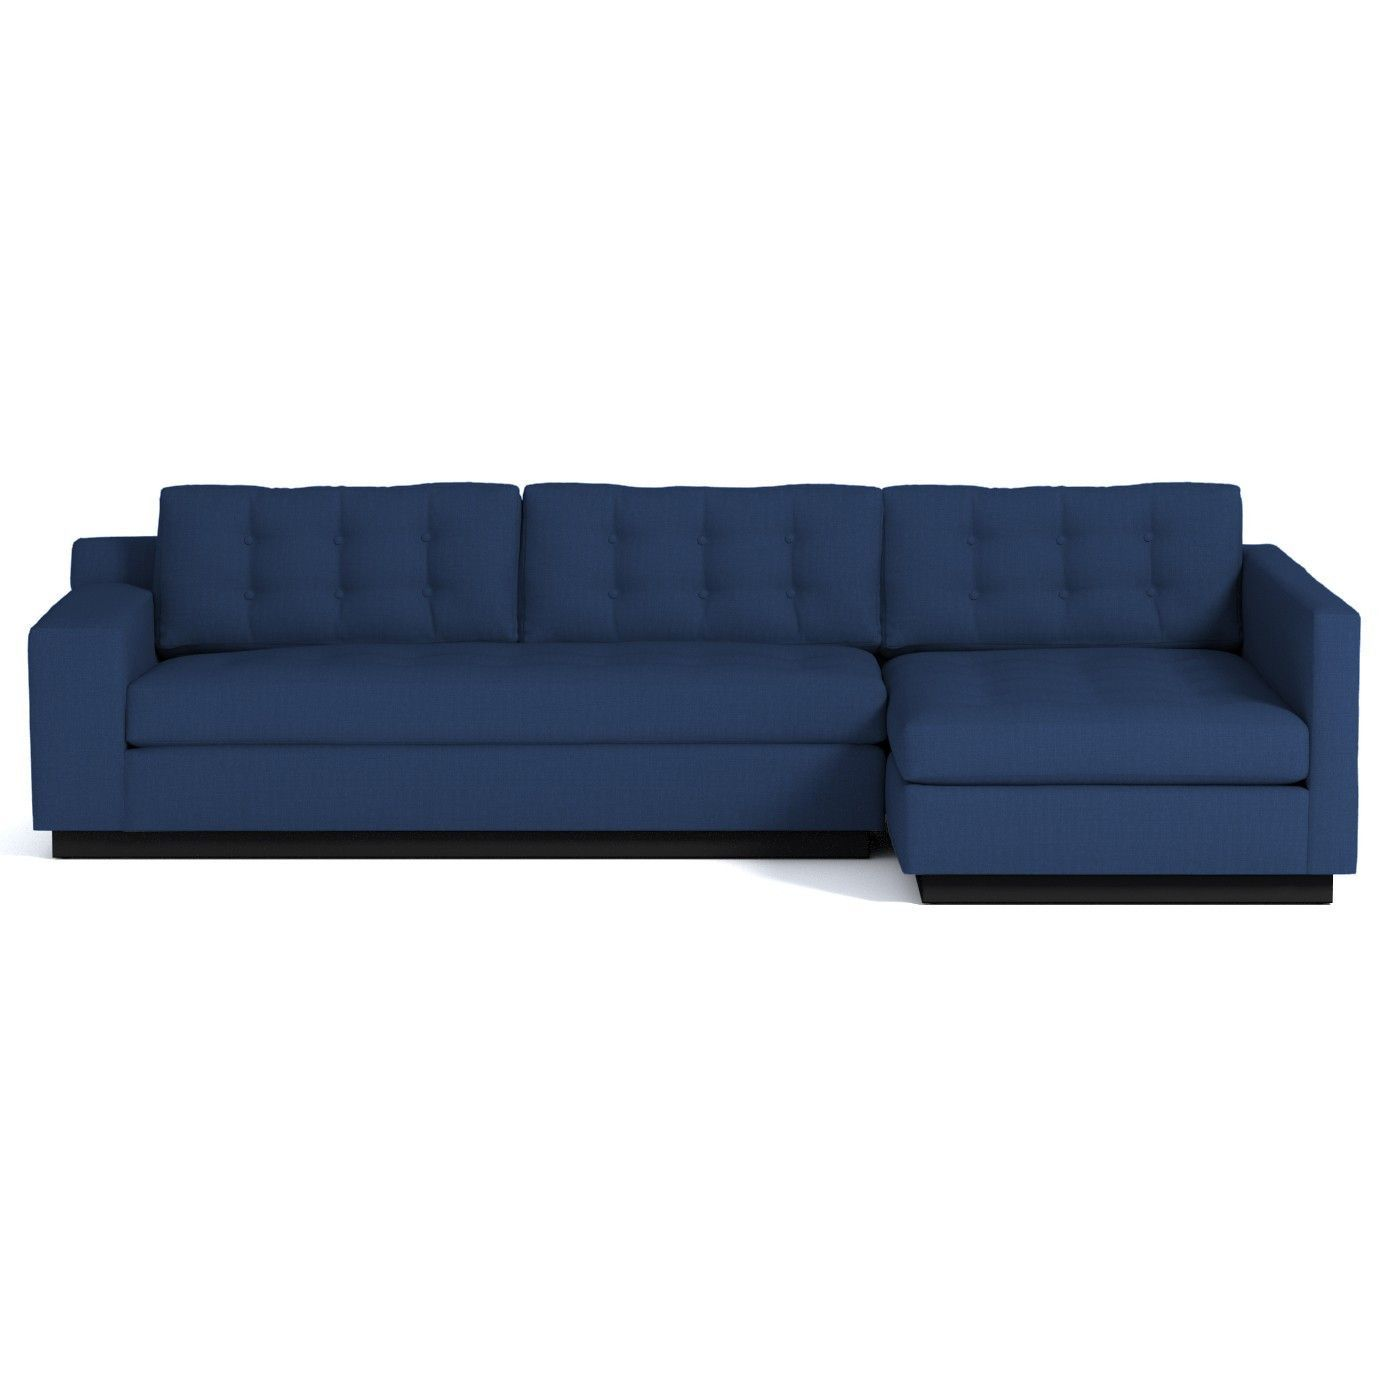 Fresh Navy Blue Sectional Sofa Pictures Navy Blue Sectional Sofa Best Of Blue Sleeper Sofa Book O Blue Sofas Living Room Sectional Sofa With Chaise Sofa Design